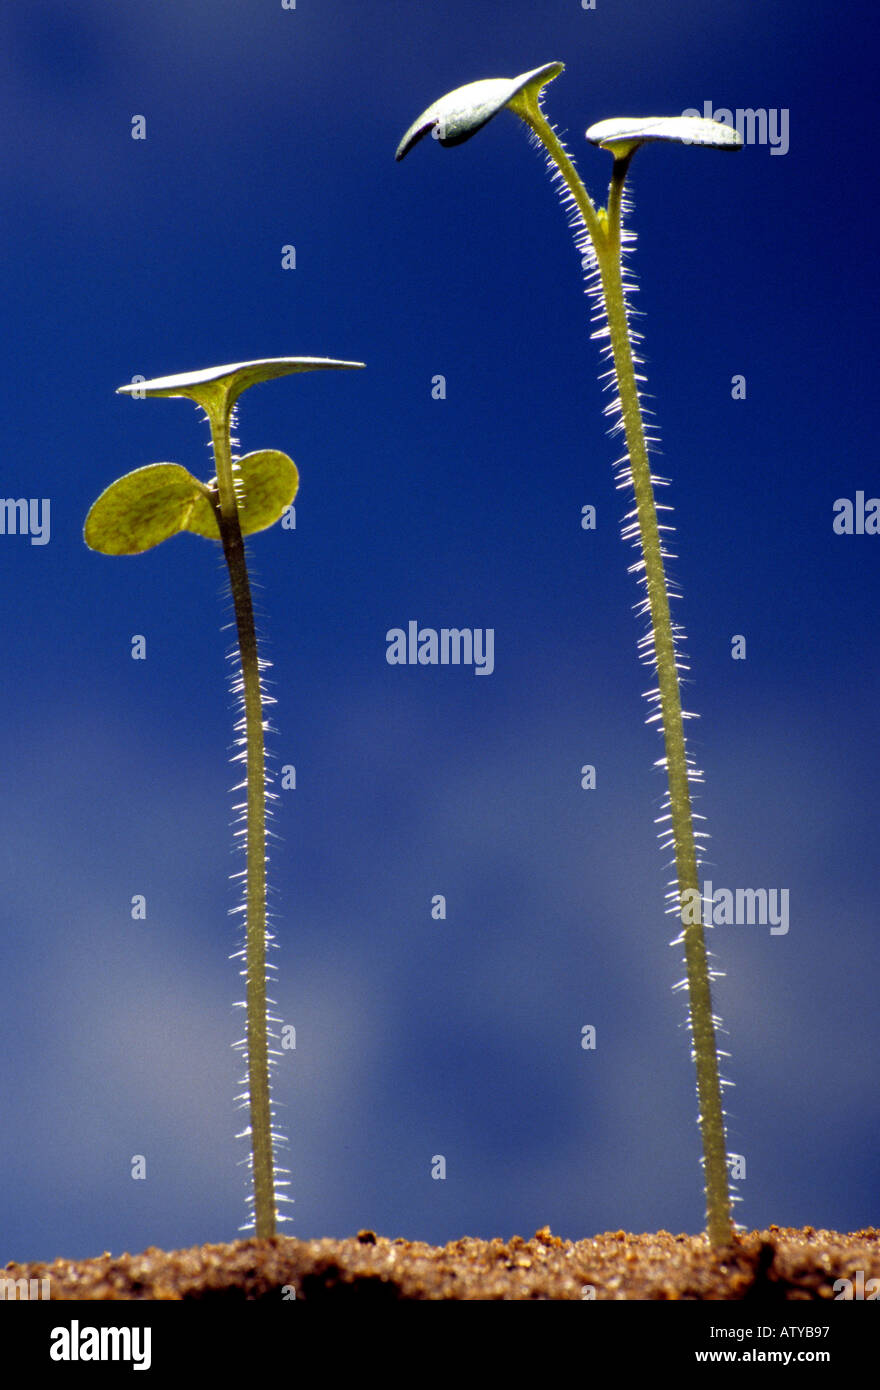 2 tiny mustard seedlings with their first pair of seed leaves stand in sand against a blue sky - Stock Image